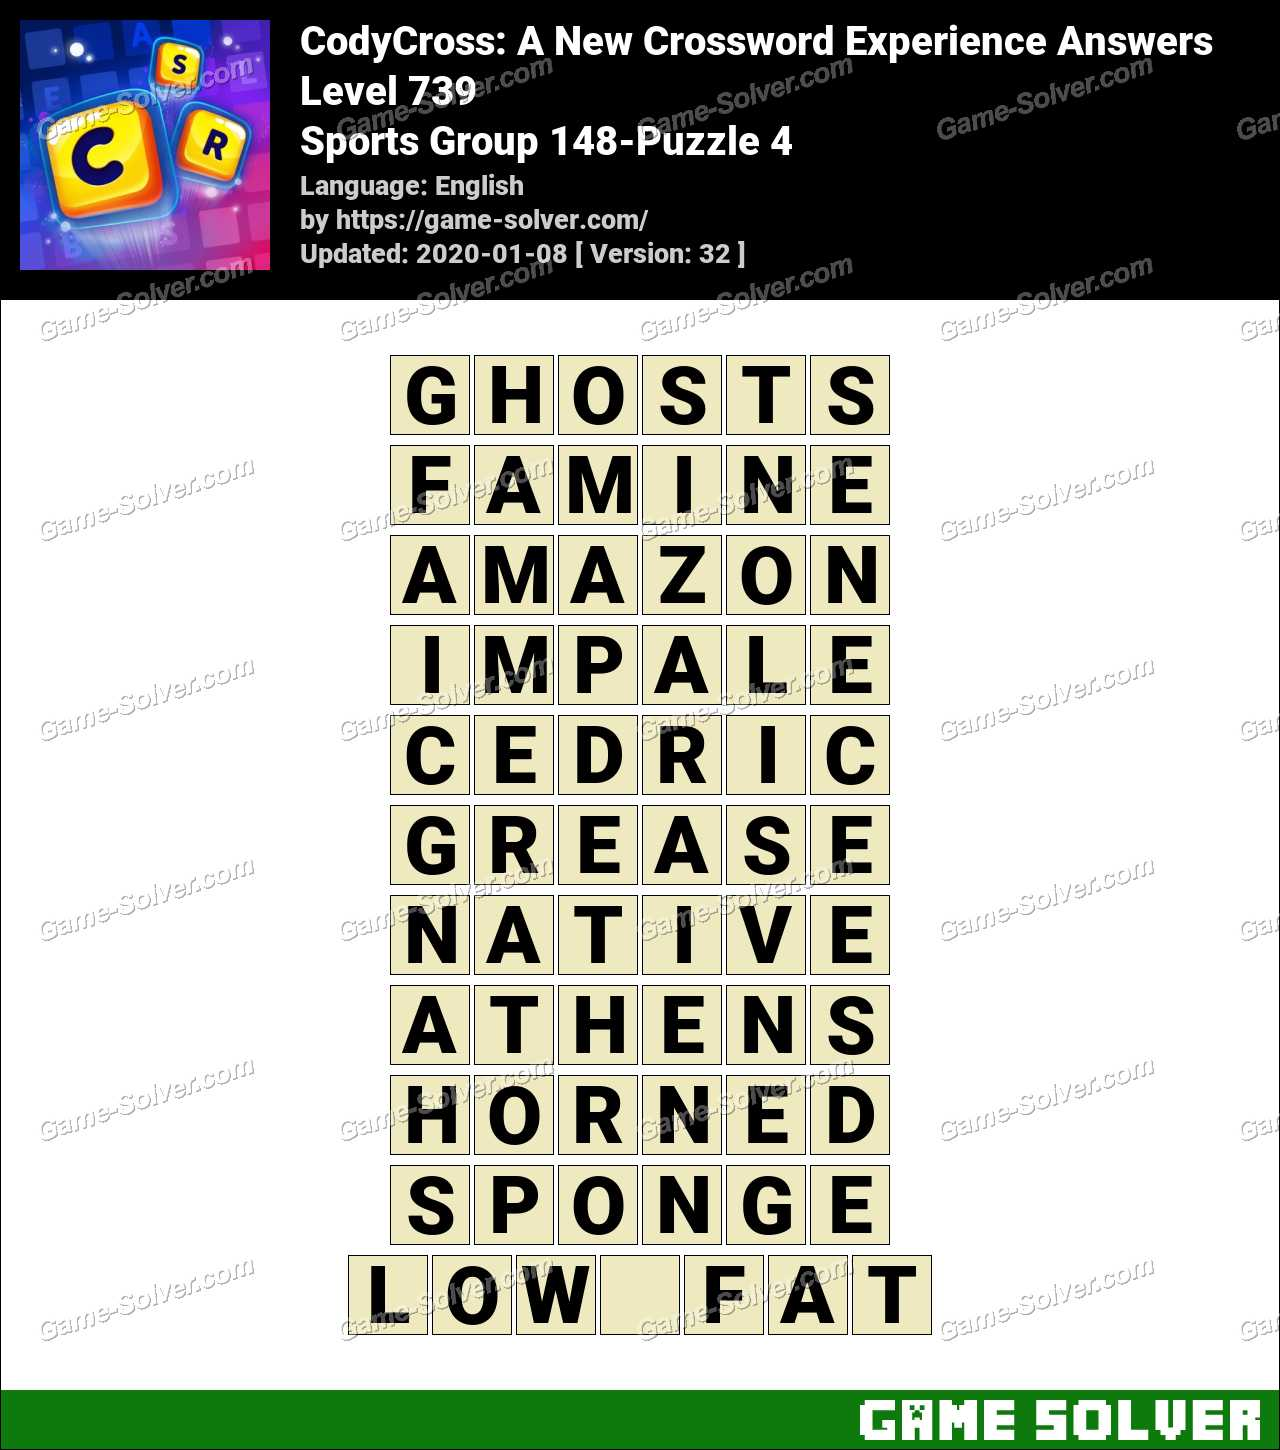 CodyCross Sports Group 148-Puzzle 4 Answers